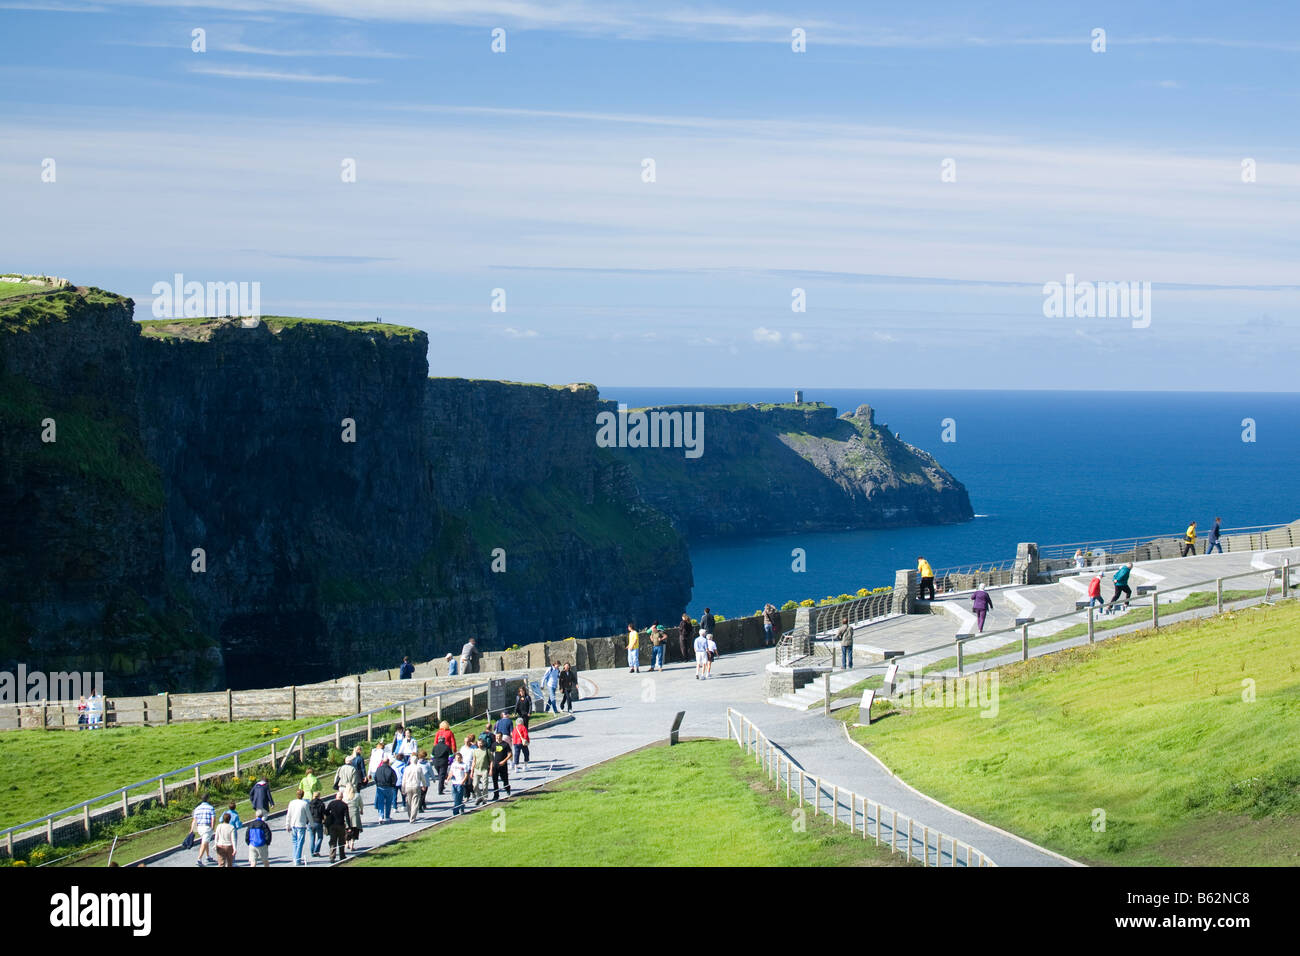 Visitors at Cliffs of Moher Co Clare Ireland - Stock Image